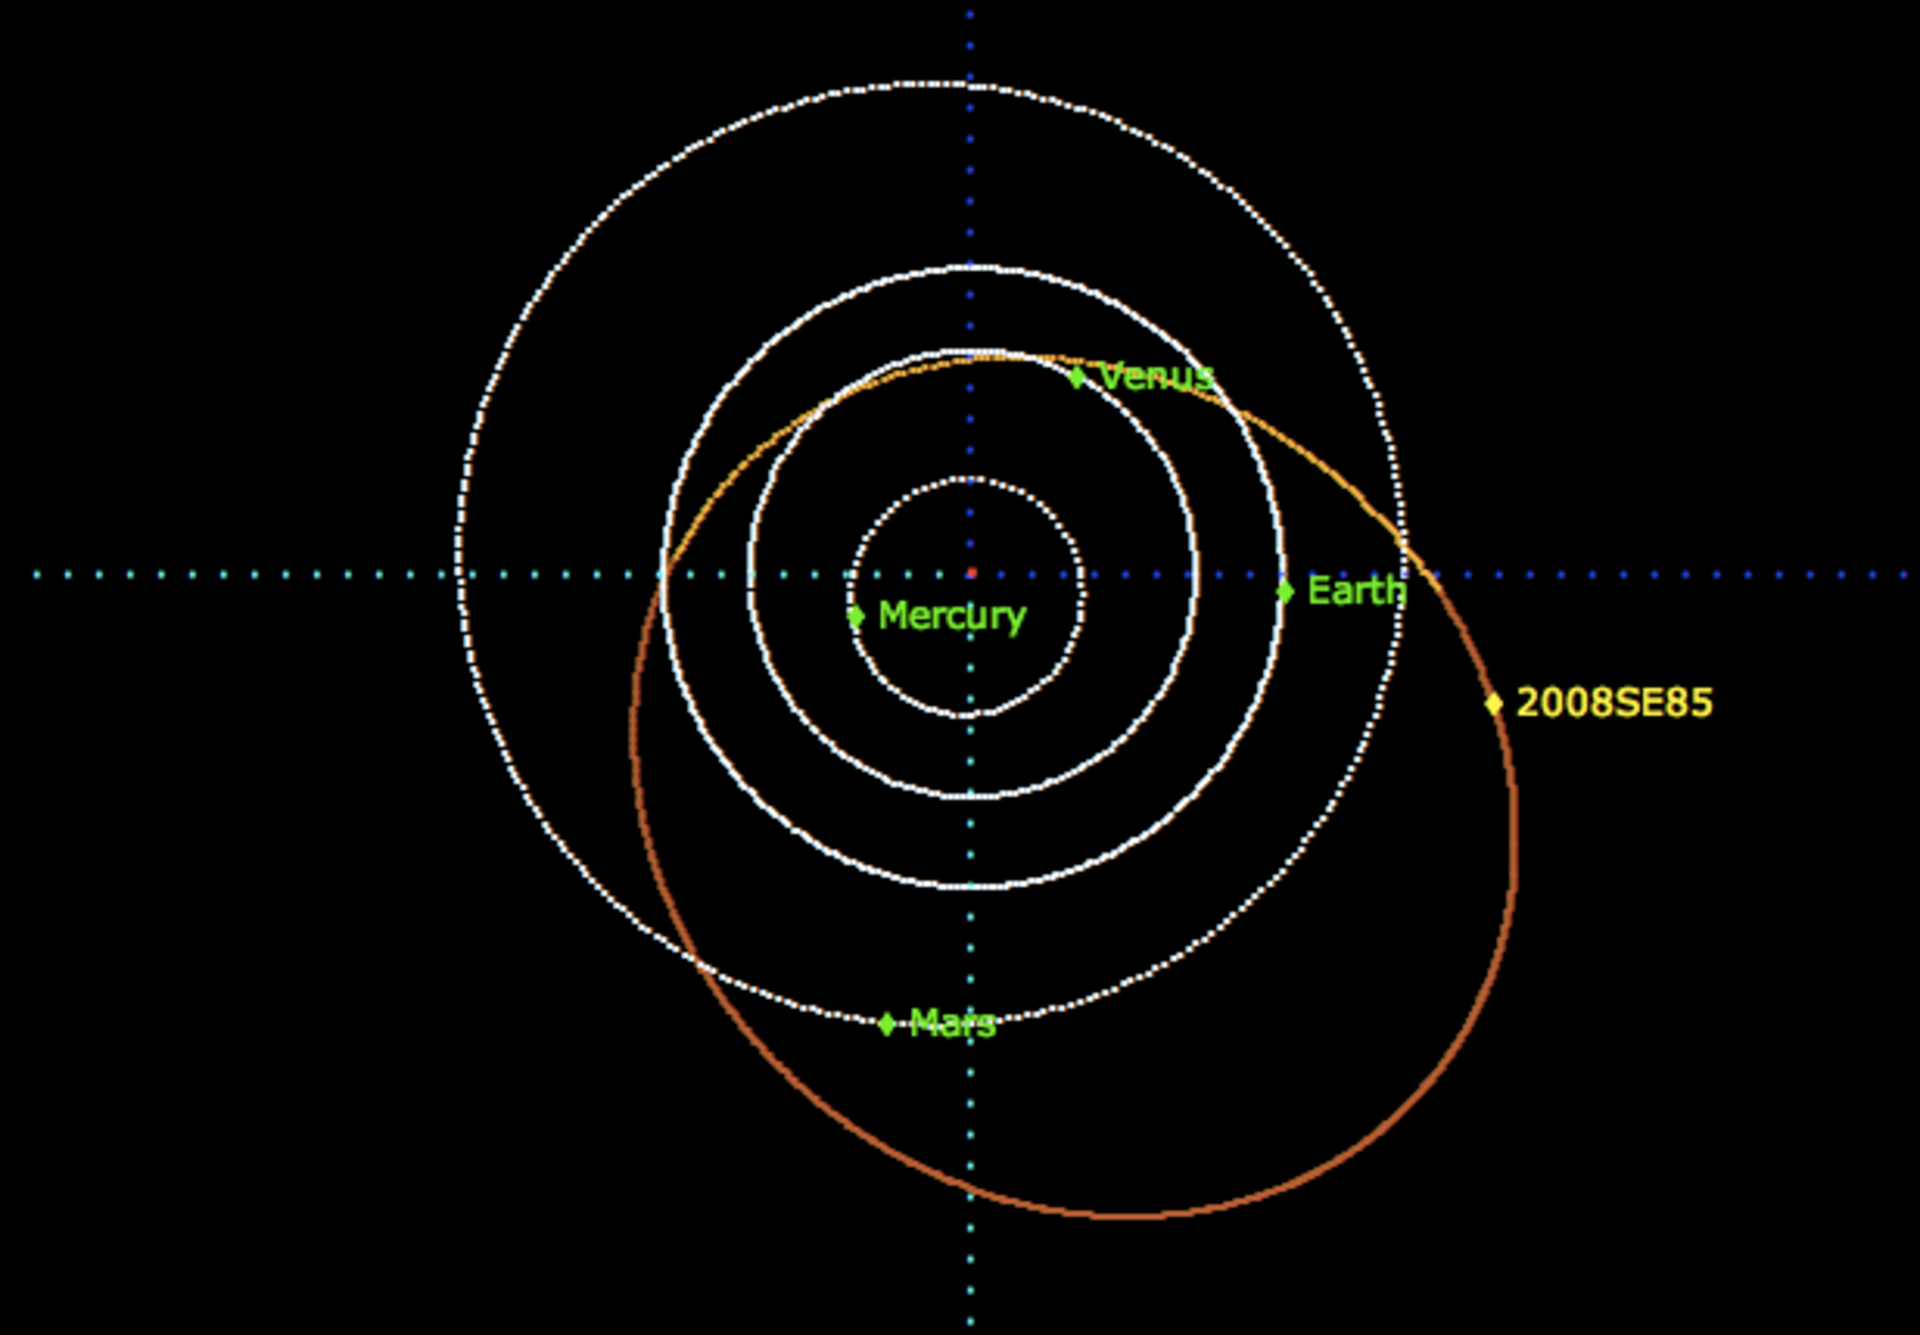 Orbit of 2008SE85